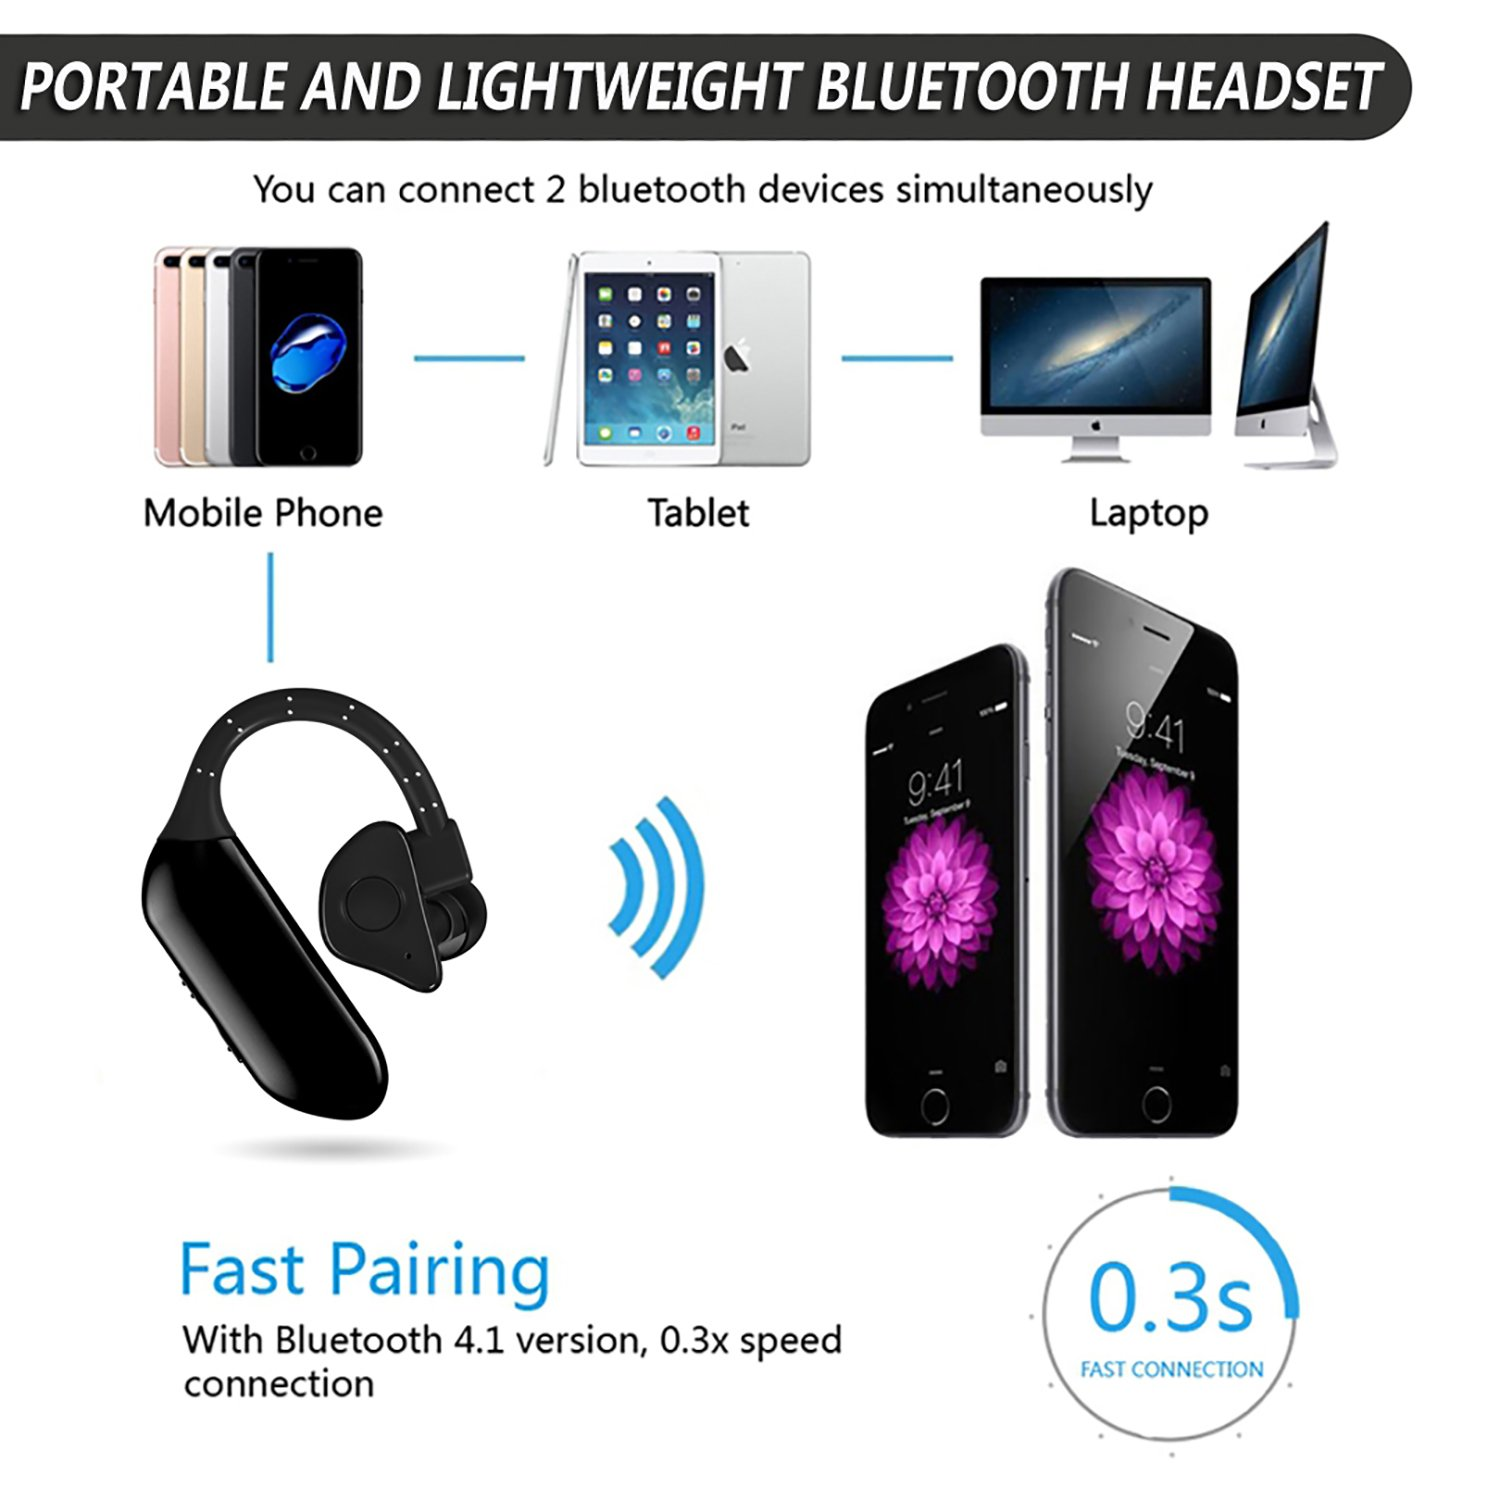 Amazon.com: EXPIDEA Single Bluetooth Headphone Wireless Mini Earbud In-ear Hands-free Earpiece Built in Microphone Bluetooth v4.1 Dual Battery Separable ...